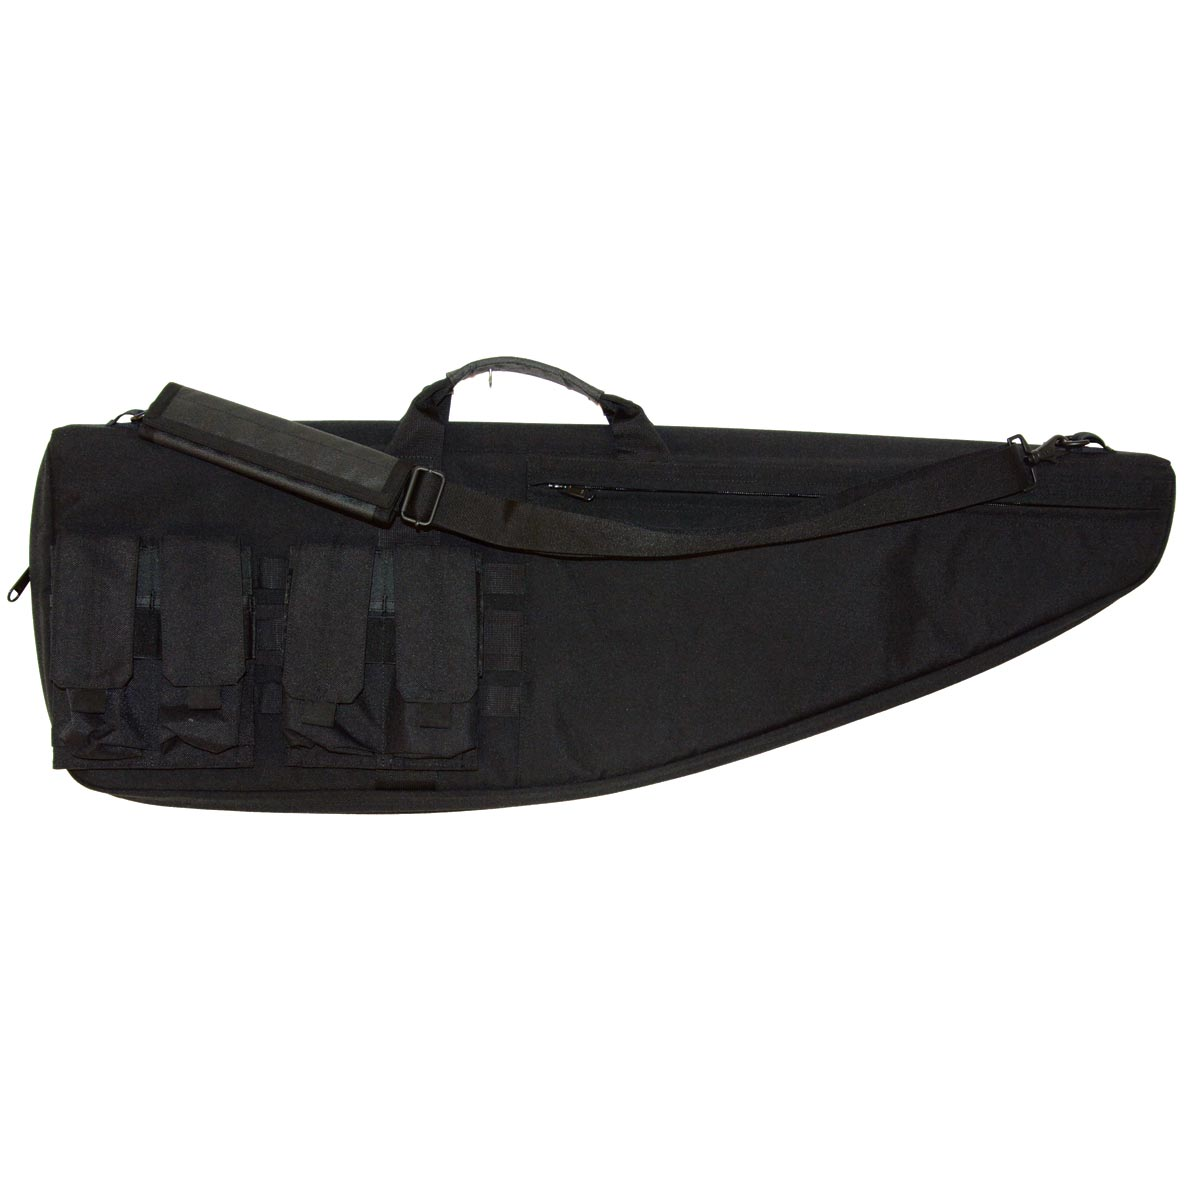 Boyt TAC341 41 Inch Profile Shaped Tactical Rifle/Carbine Gun Case